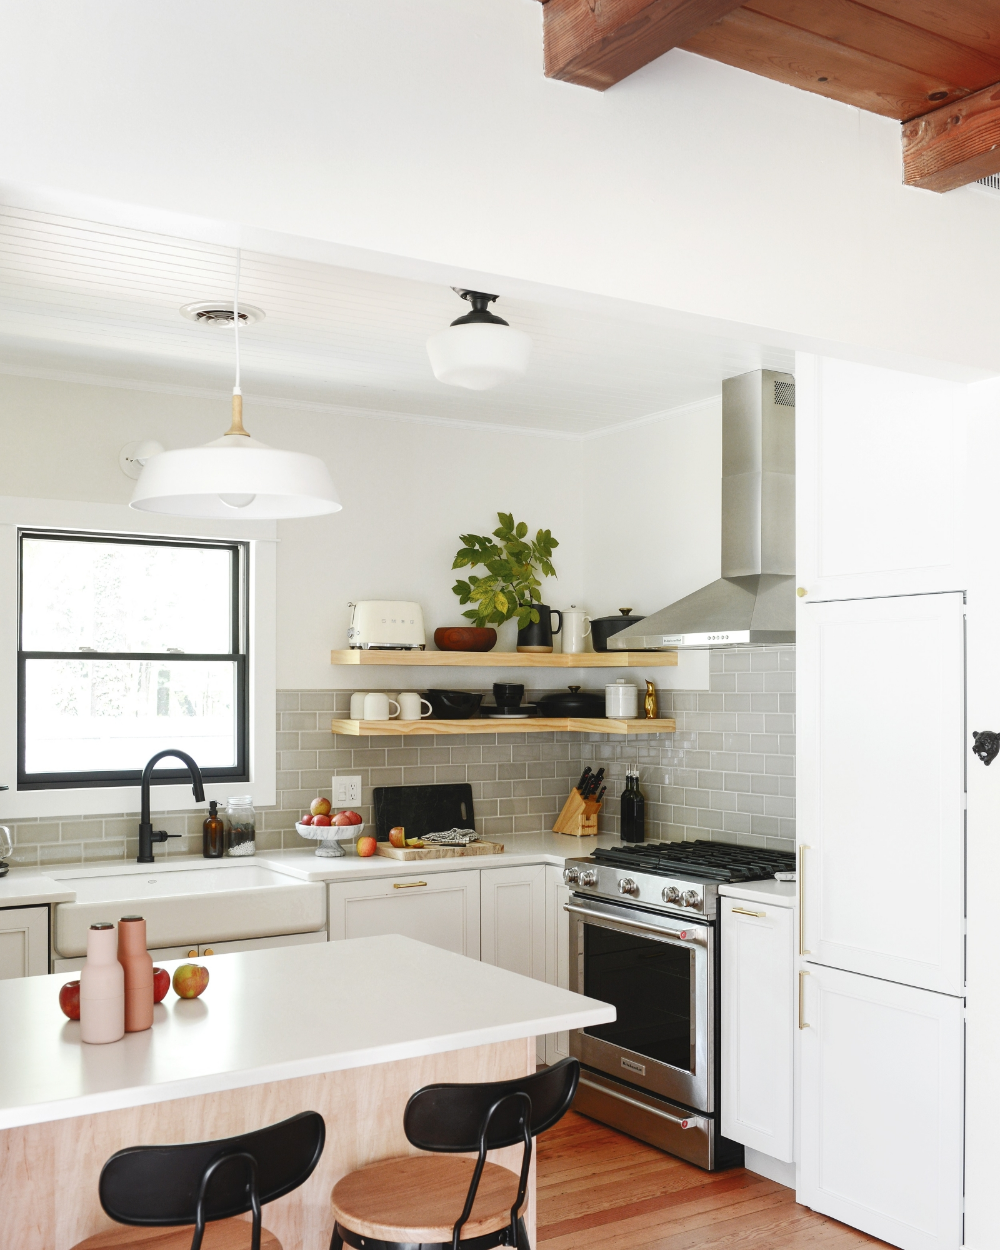 a case for open shelves in the kitchen with images open shelving kitchen decor modern on kitchen decor open shelves id=25918